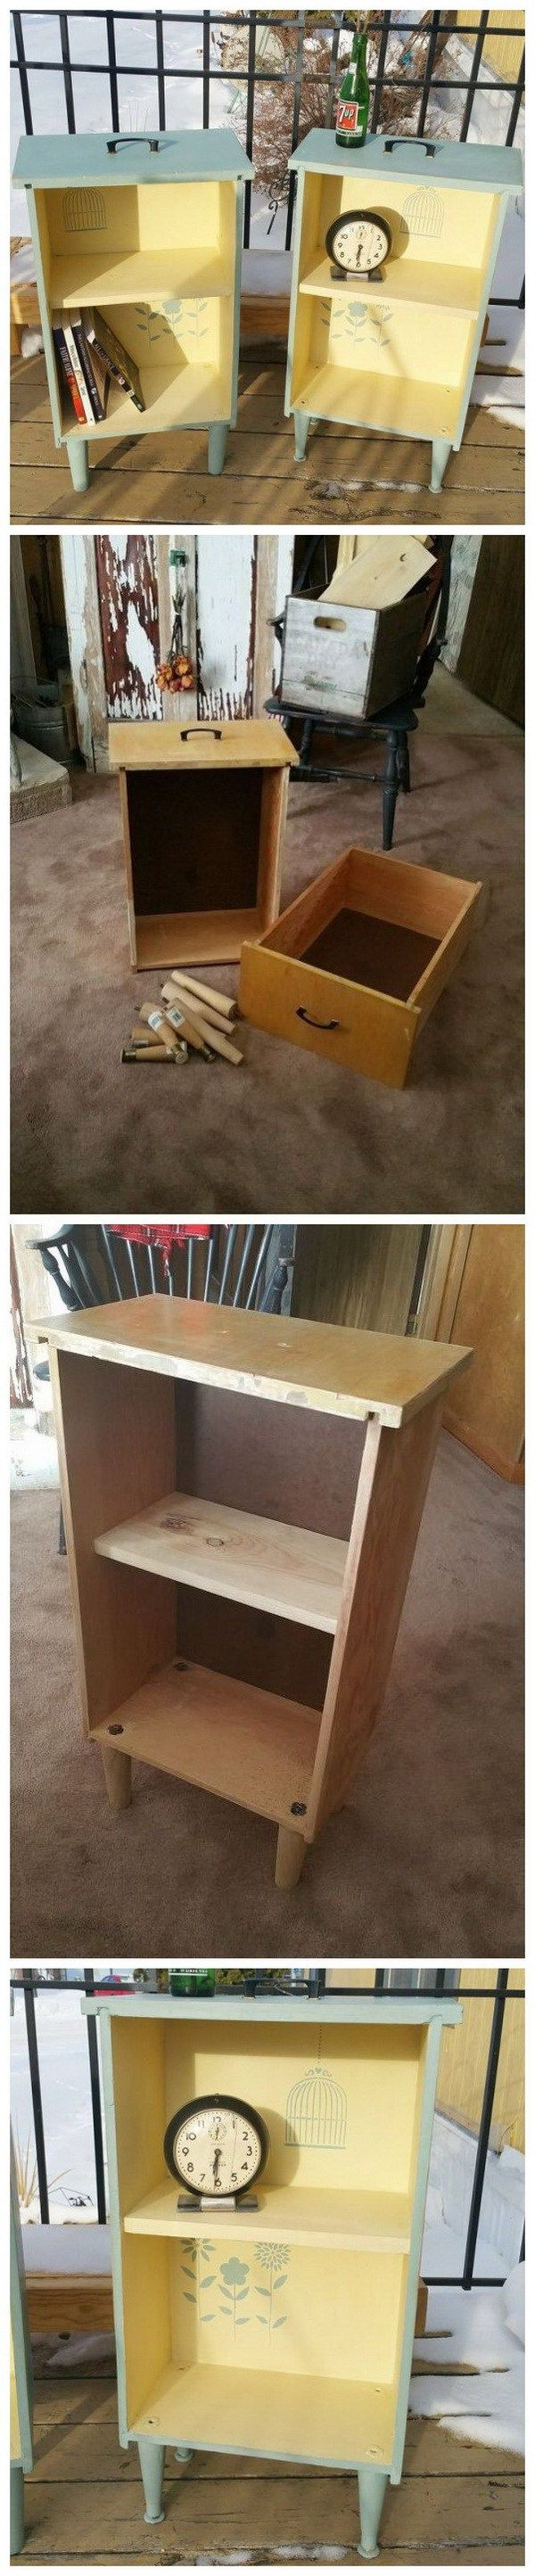 DIY Ideas Of Reusing Old Furniture 20 More